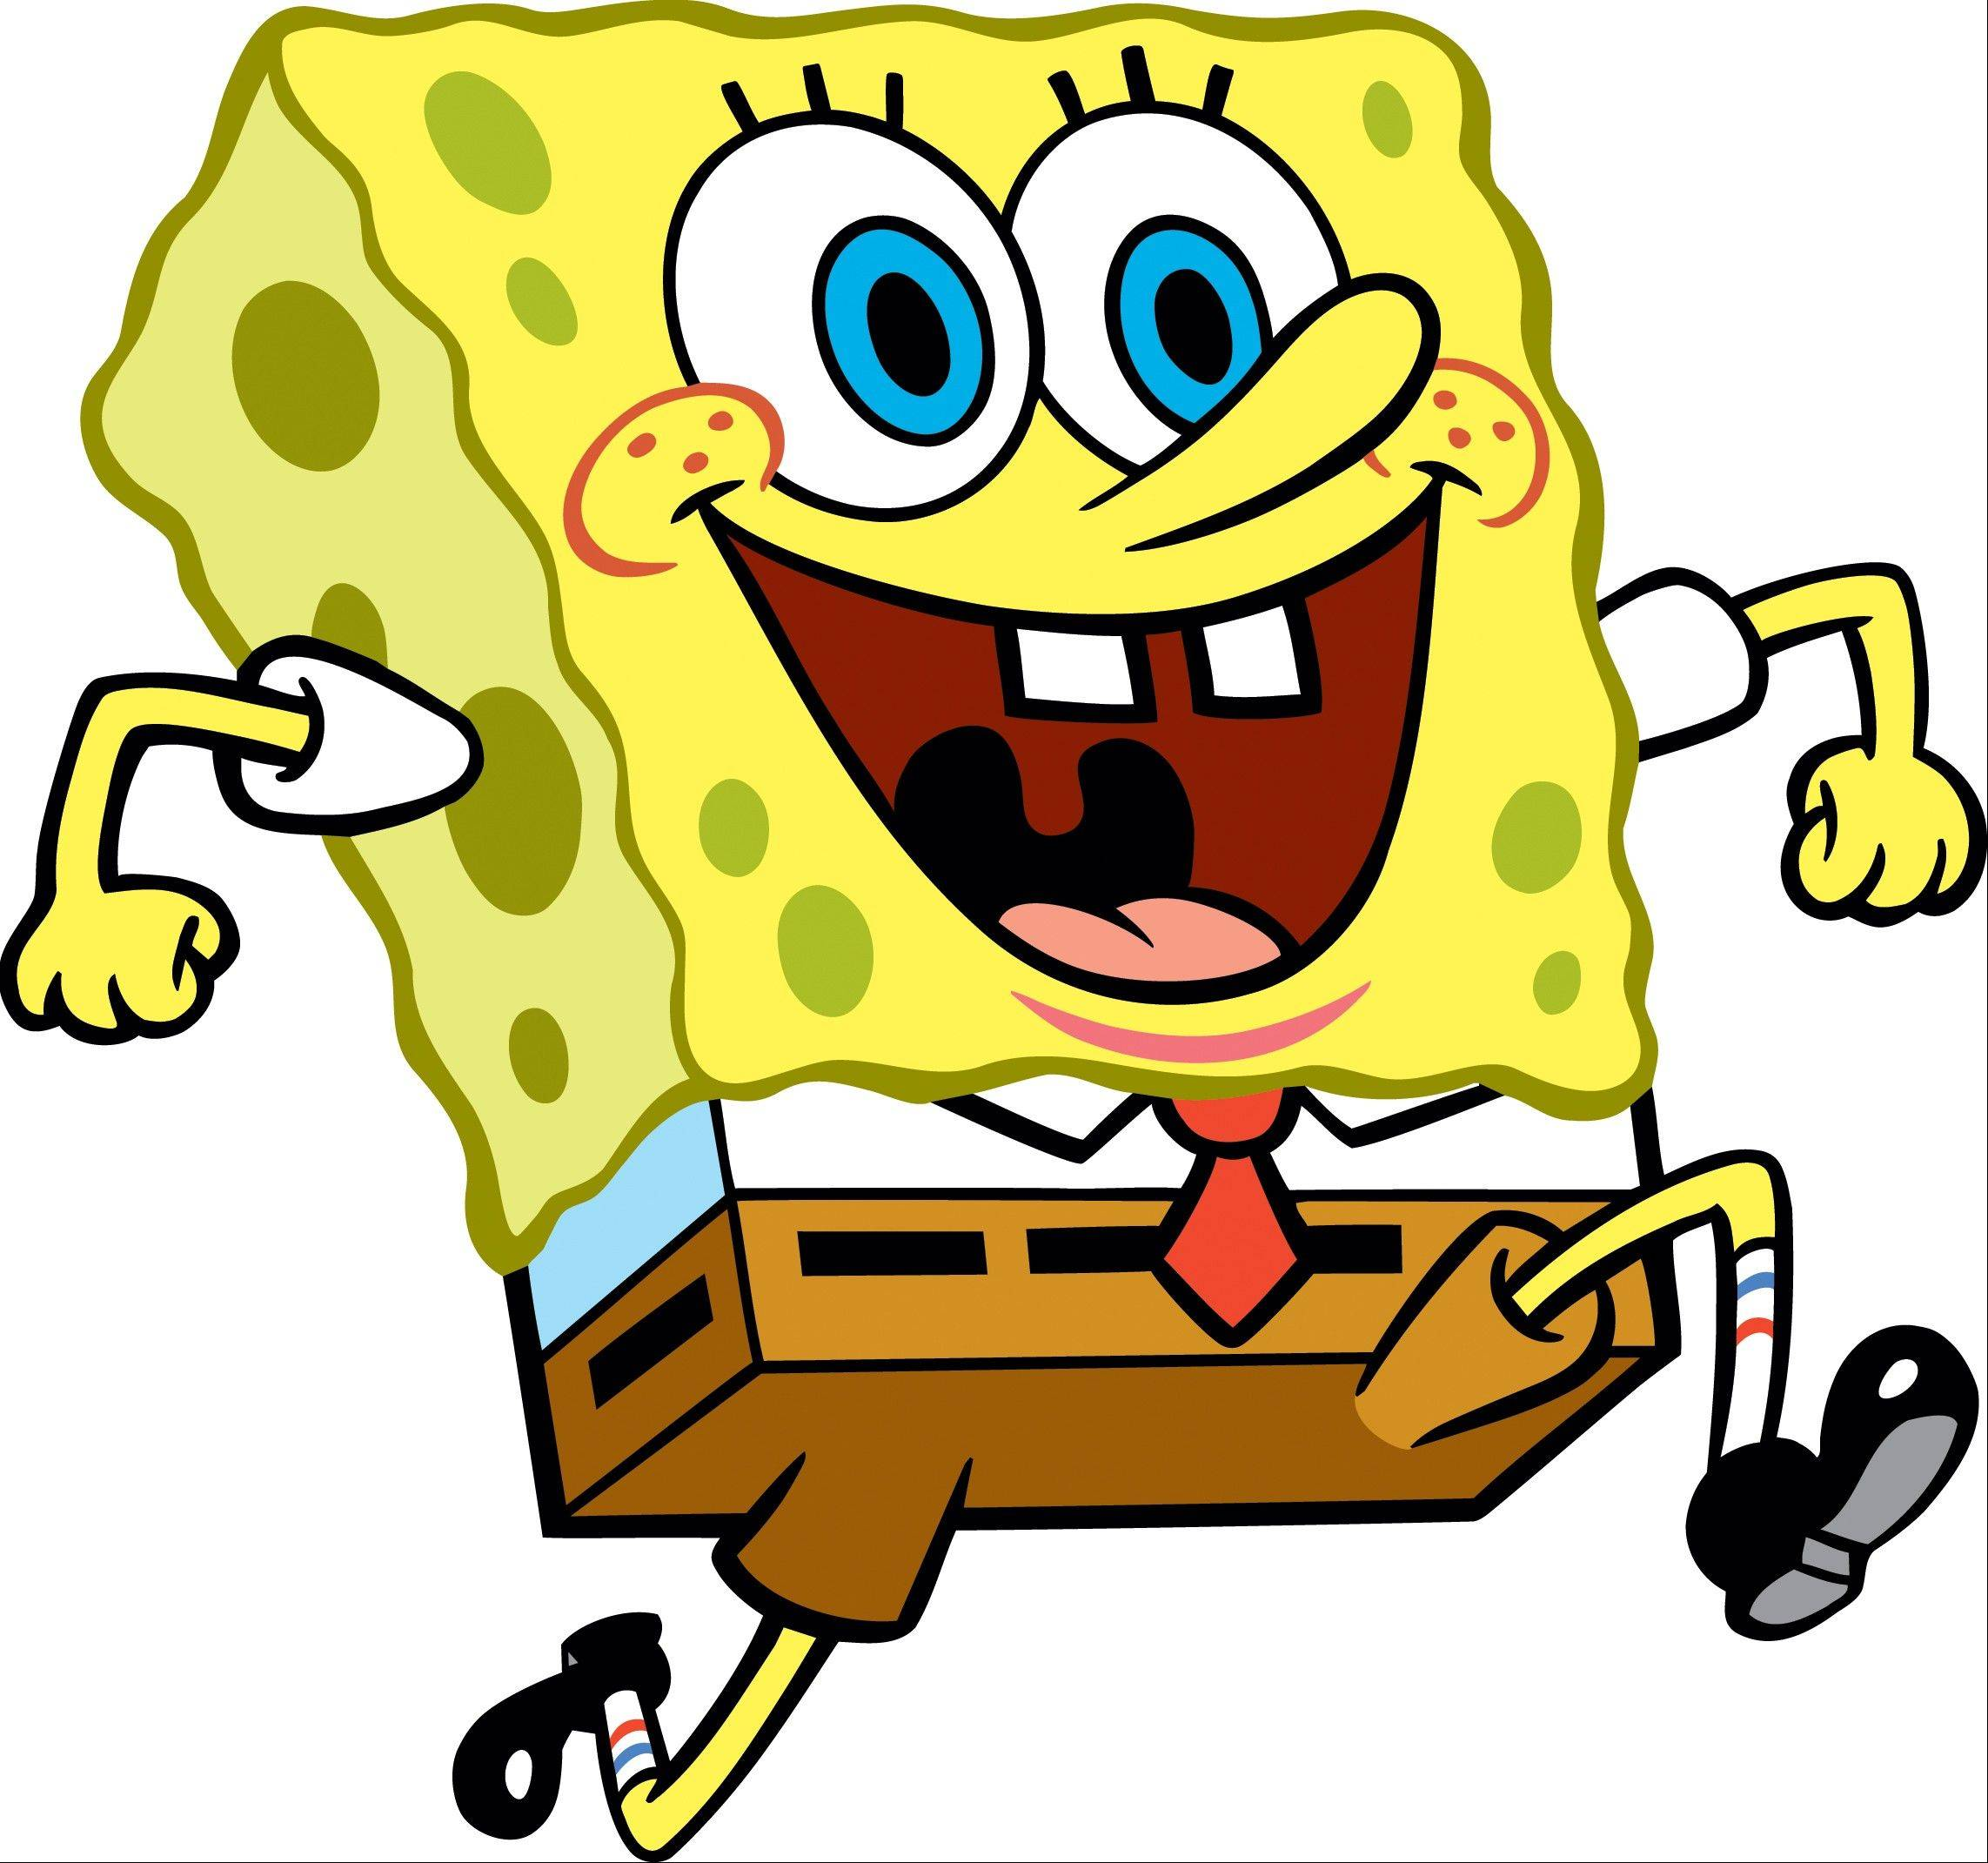 �SpongeBob SquarePants� and other Nickelodeon children�s programs will be dubbed into Mandarin and available to watch free online in China over the next 12 months in the latest deal to give a foreign entertainment company more access to China�s vast market.